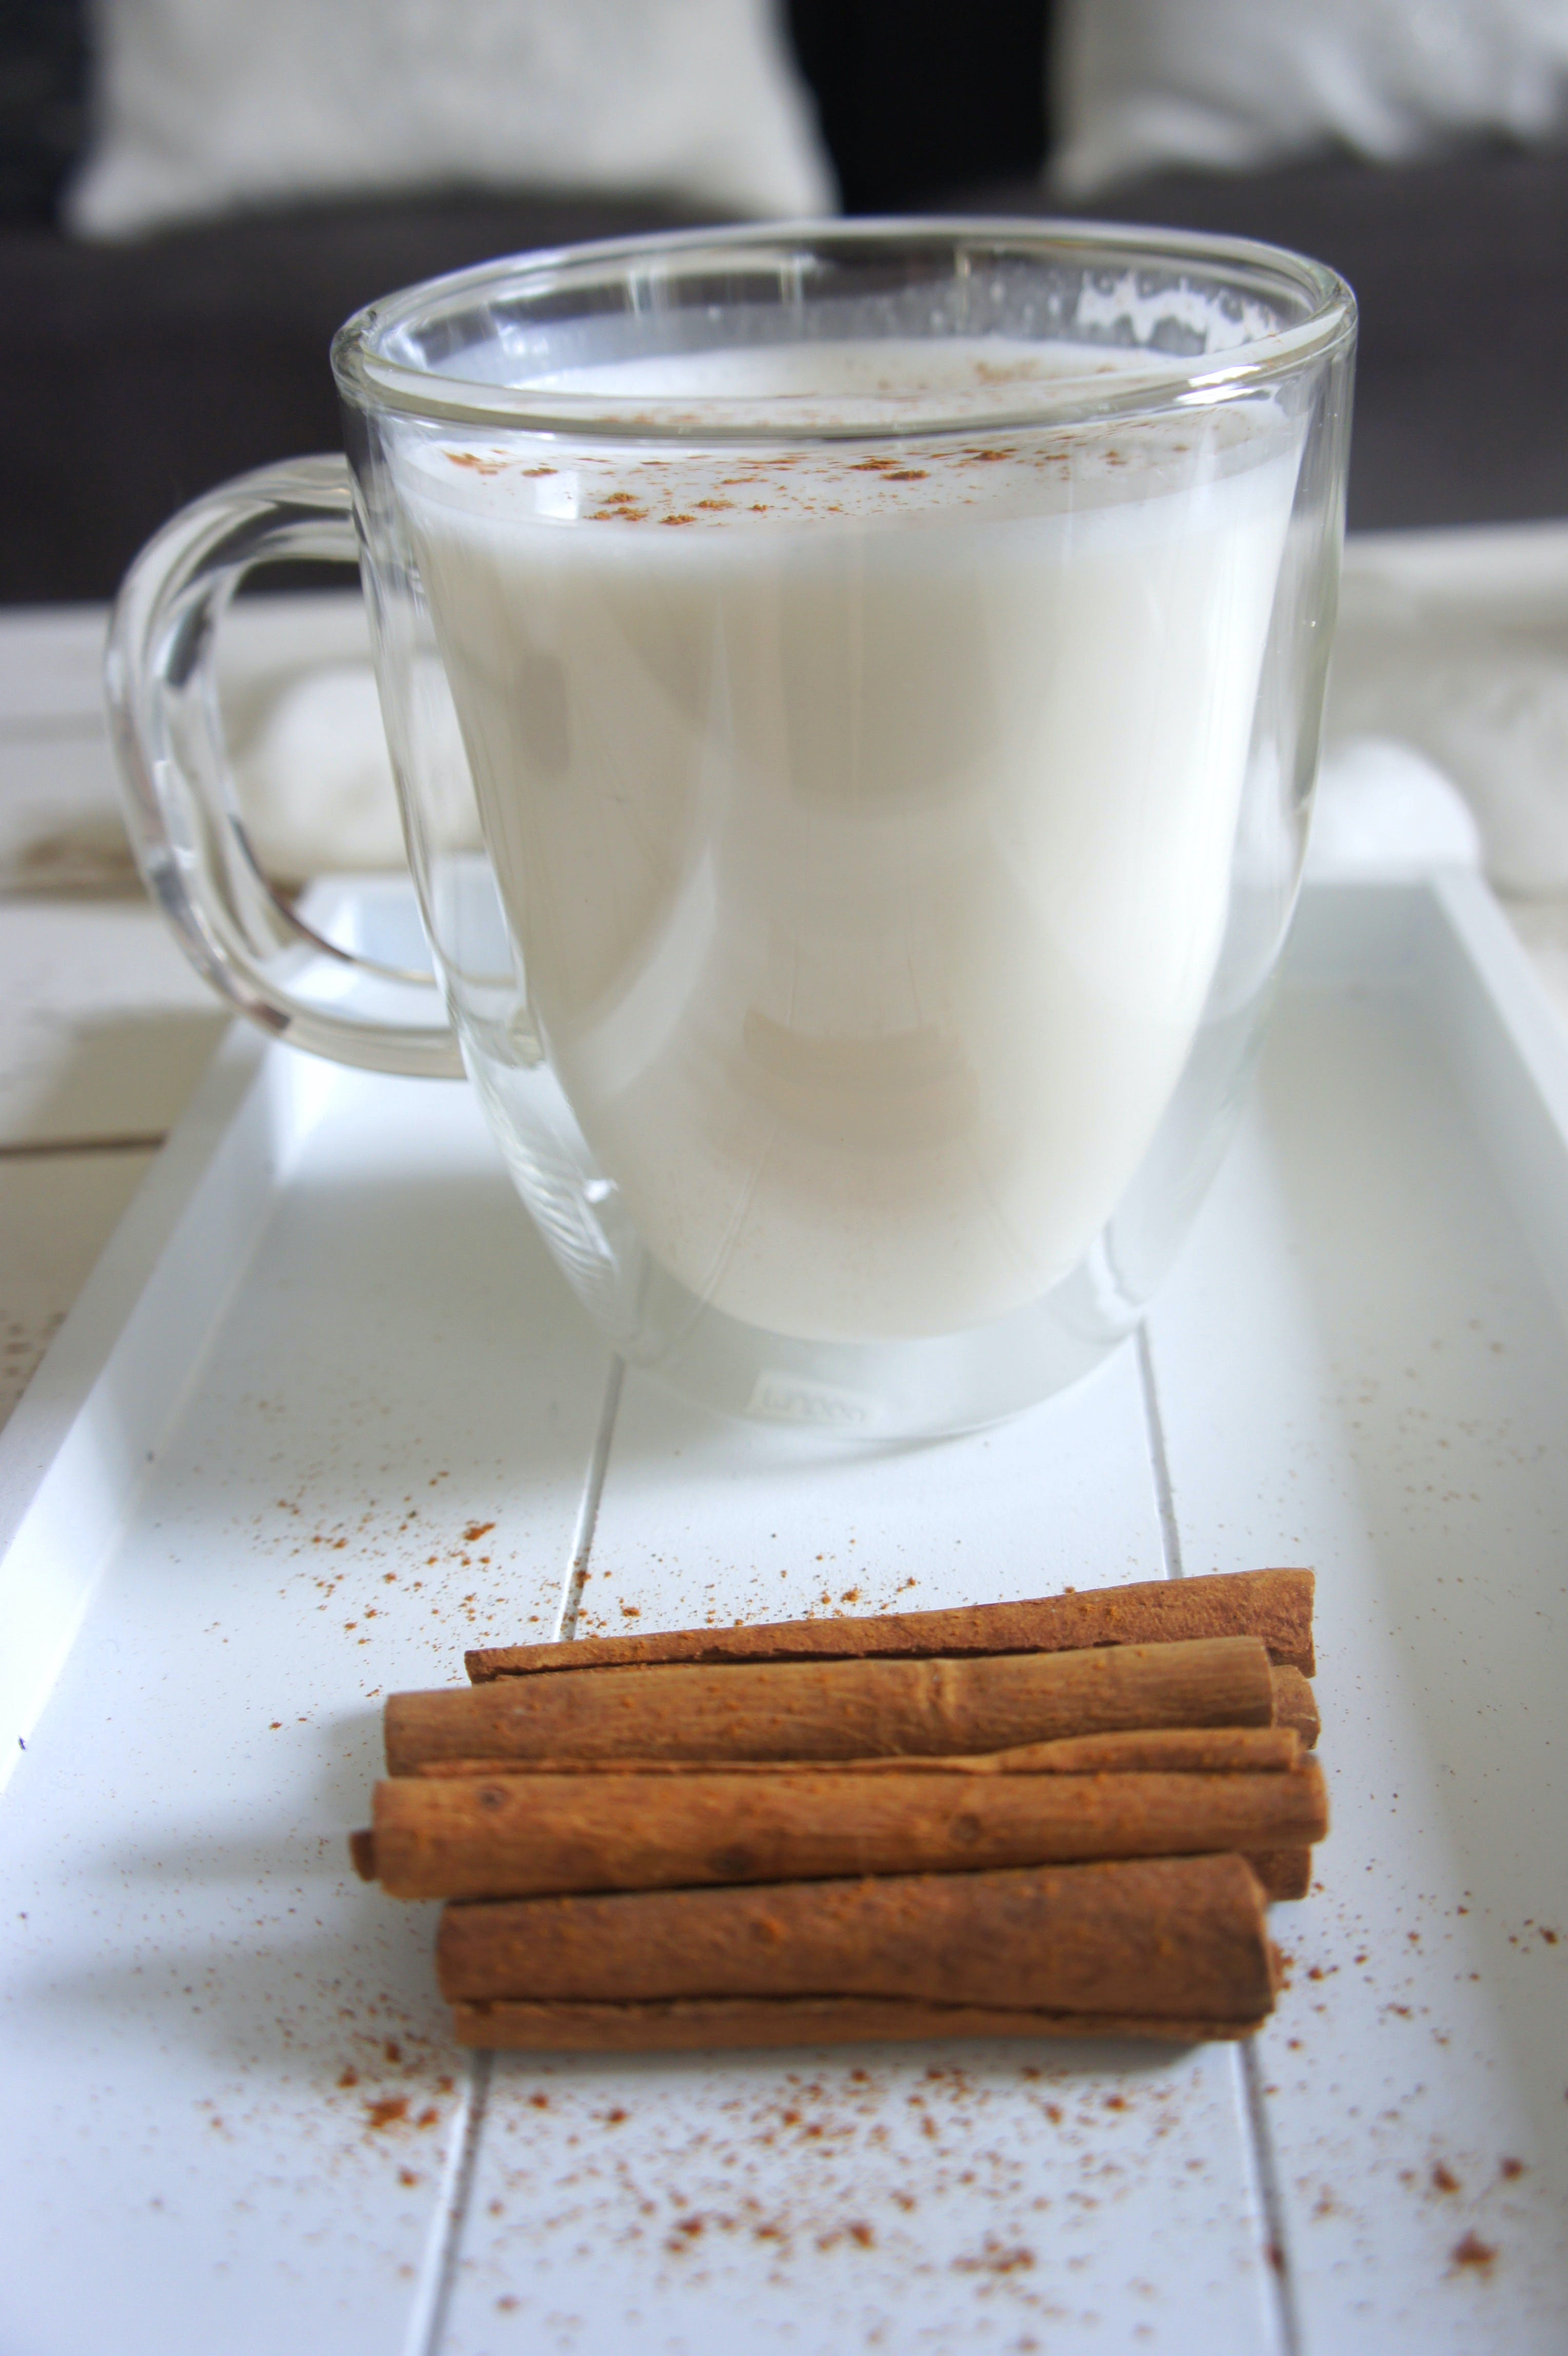 Cinnamon Sticks beside the Glass of Milk